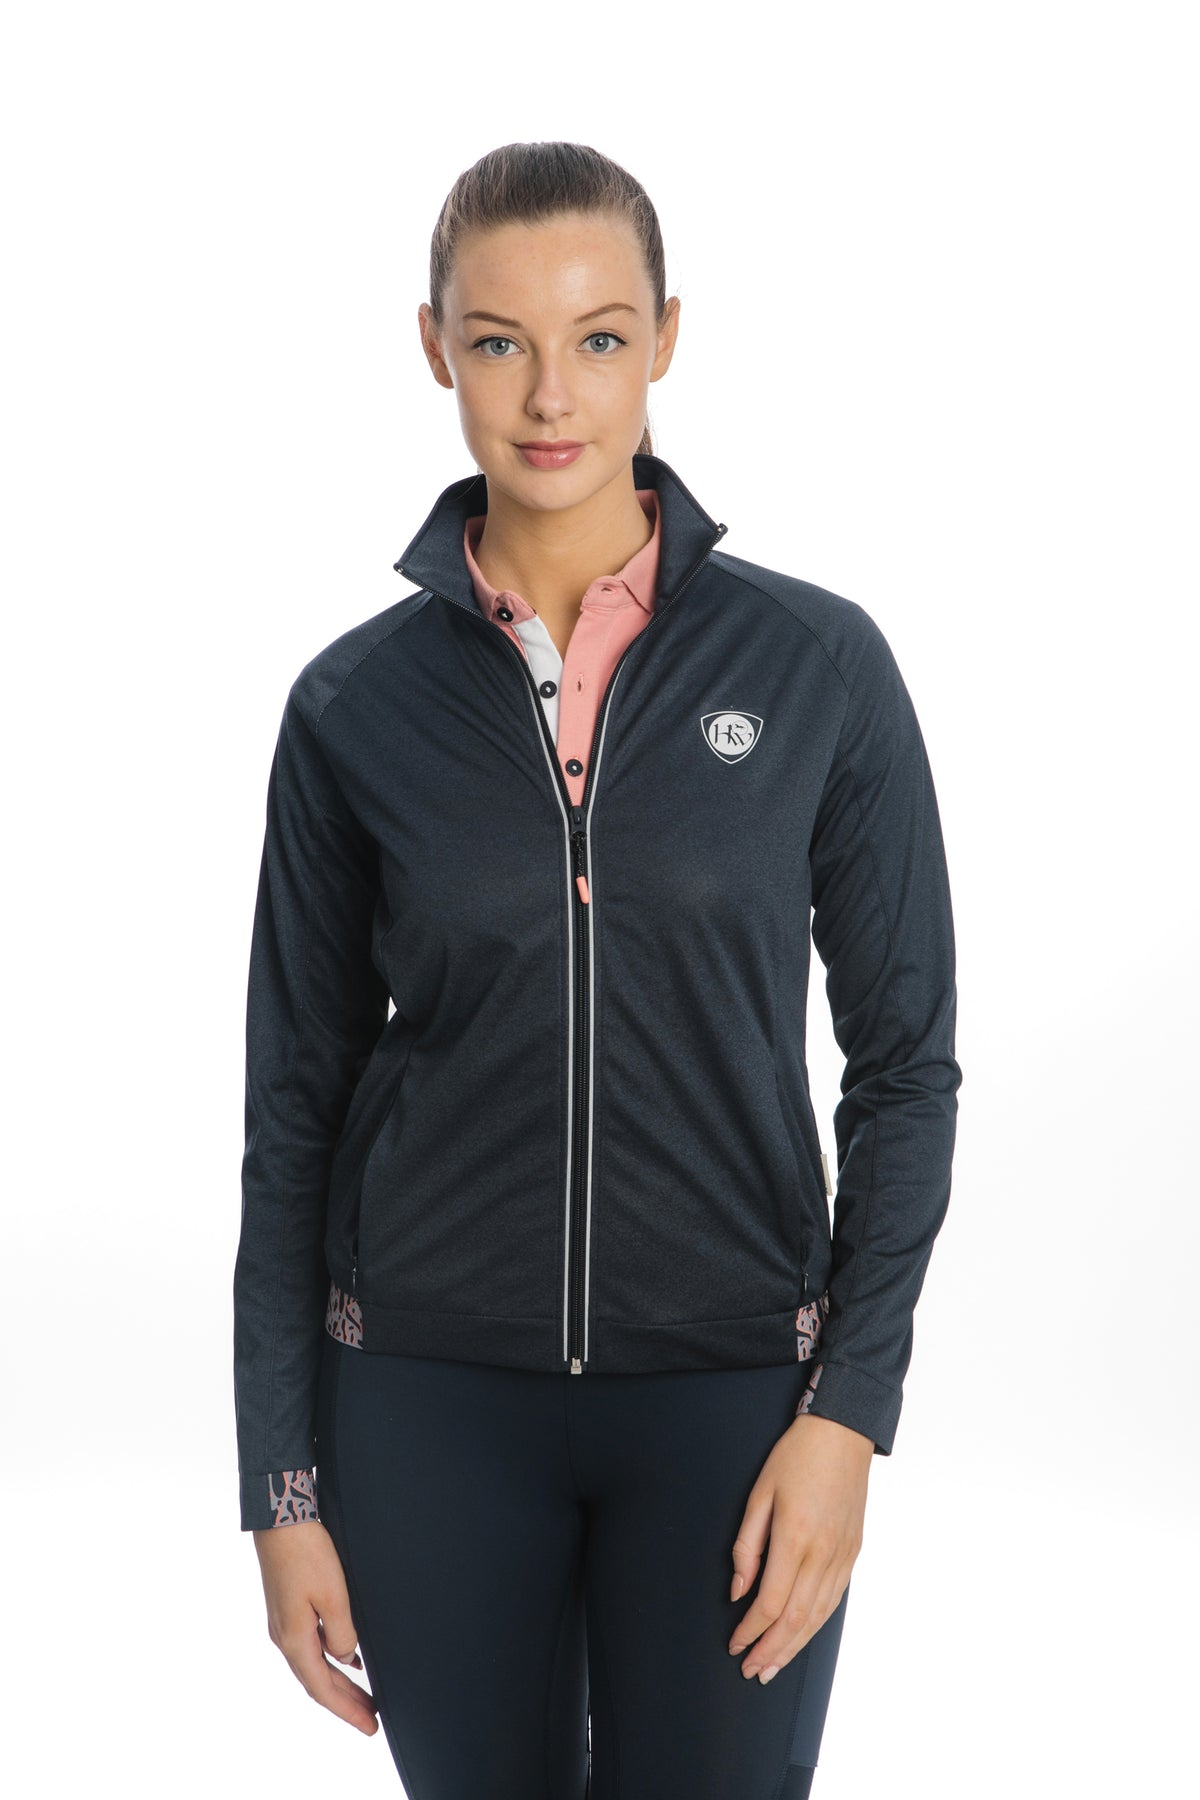 Technical, water resistant and breathable, the Horseware Ireland Technical Light Weight Soft shell is a wardrobe must have! created in a stretch fabric for maximum movement.  This windproof softshell is beautifully designed with all your training needs in mind. 100% Polyester / Water resistant & breathable  Stretch fabric for maximum movement  Wind proof bonded fabric / Machine washable